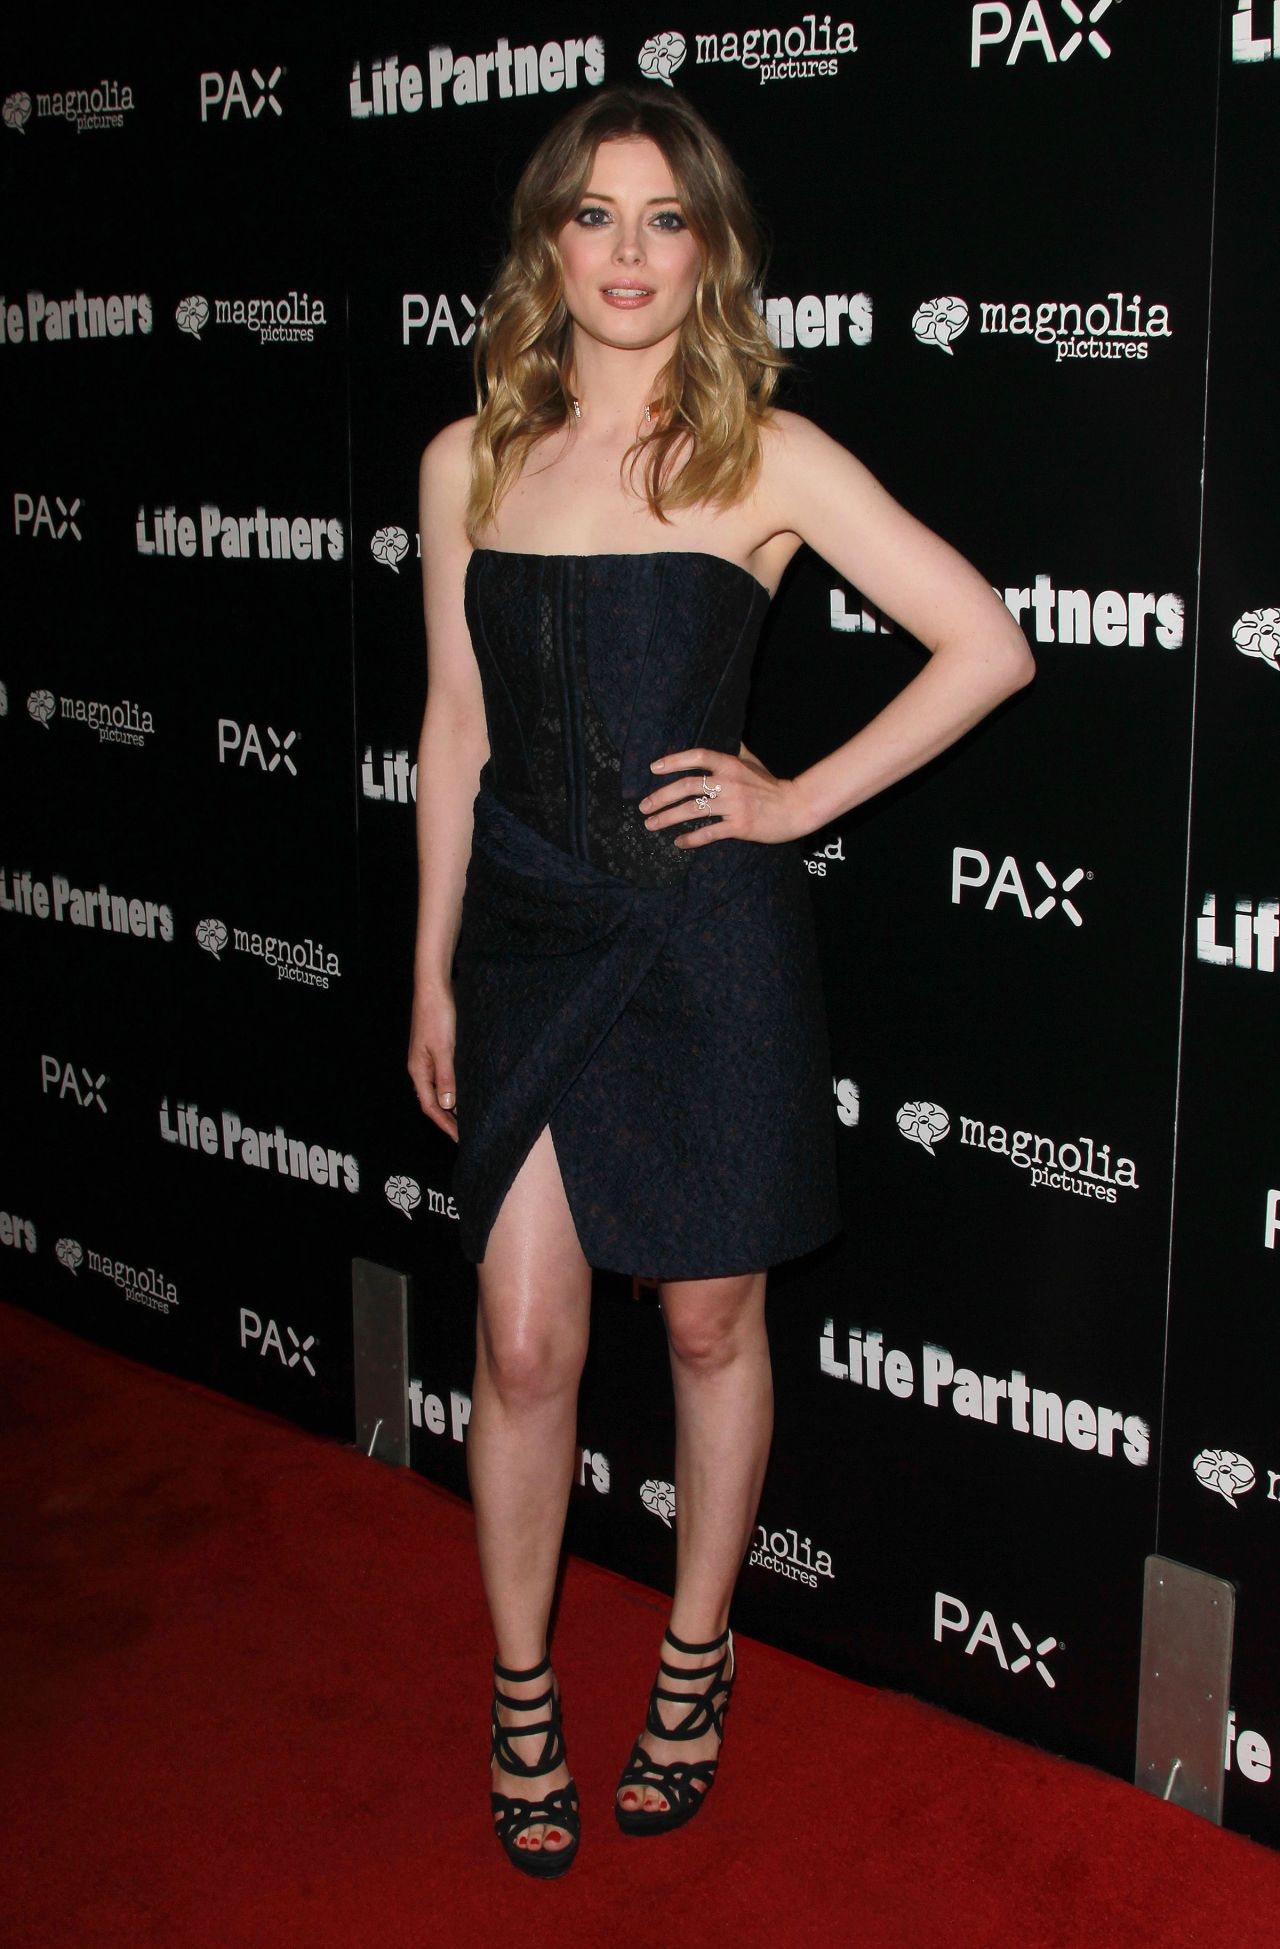 gillian-jacobs-life-partners-premiere-in-hollywood_4